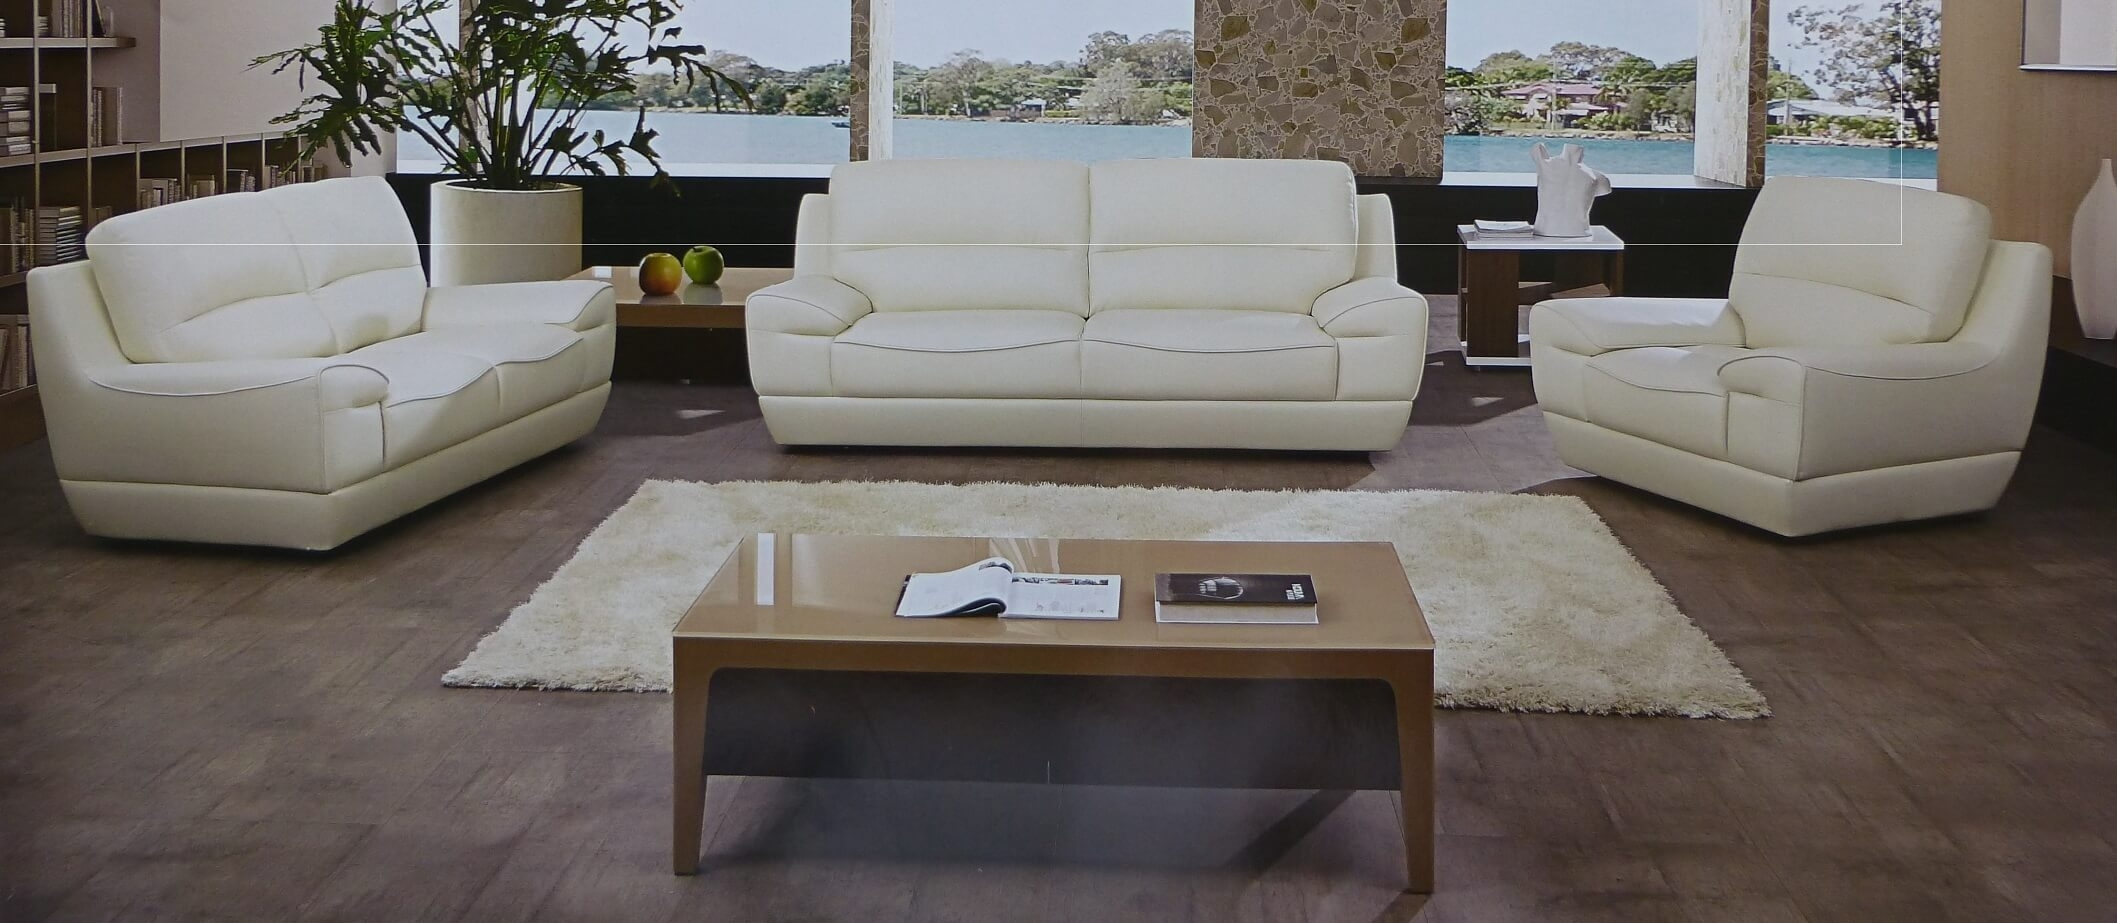 Sofa: Designs White Sofa And Loveseat White Sofa And Loveseat Set In Off White Leather Sofas (View 5 of 10)